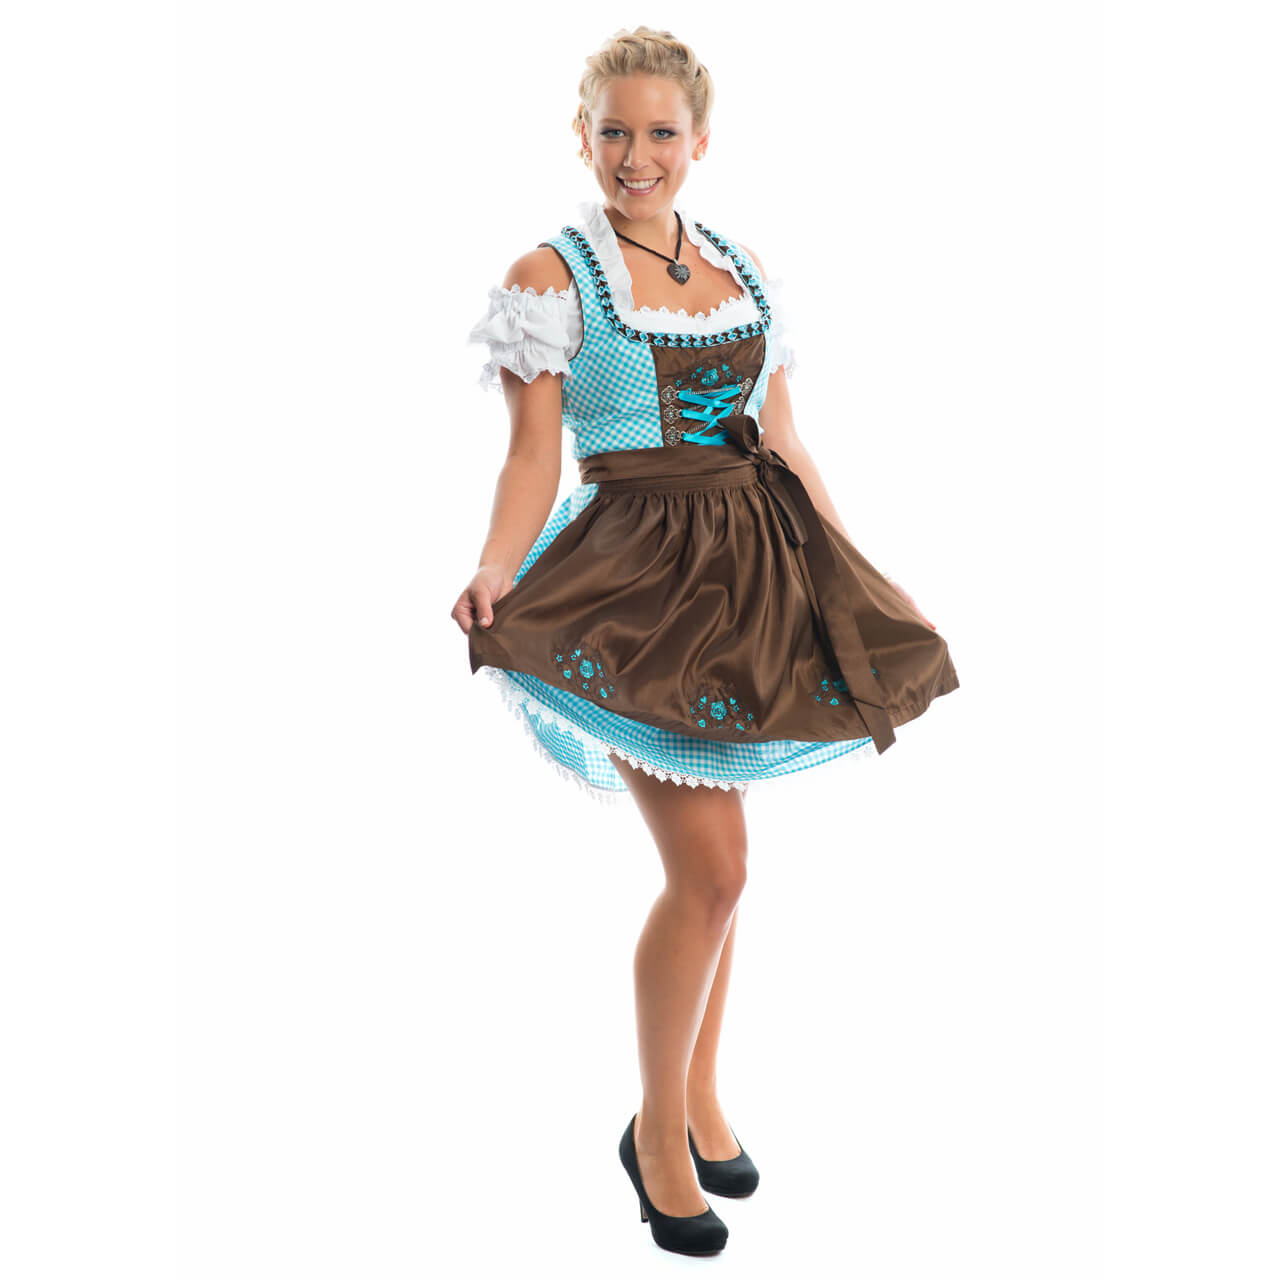 dirndl schuhe in high heels aufs oktoberfest high feelings. Black Bedroom Furniture Sets. Home Design Ideas